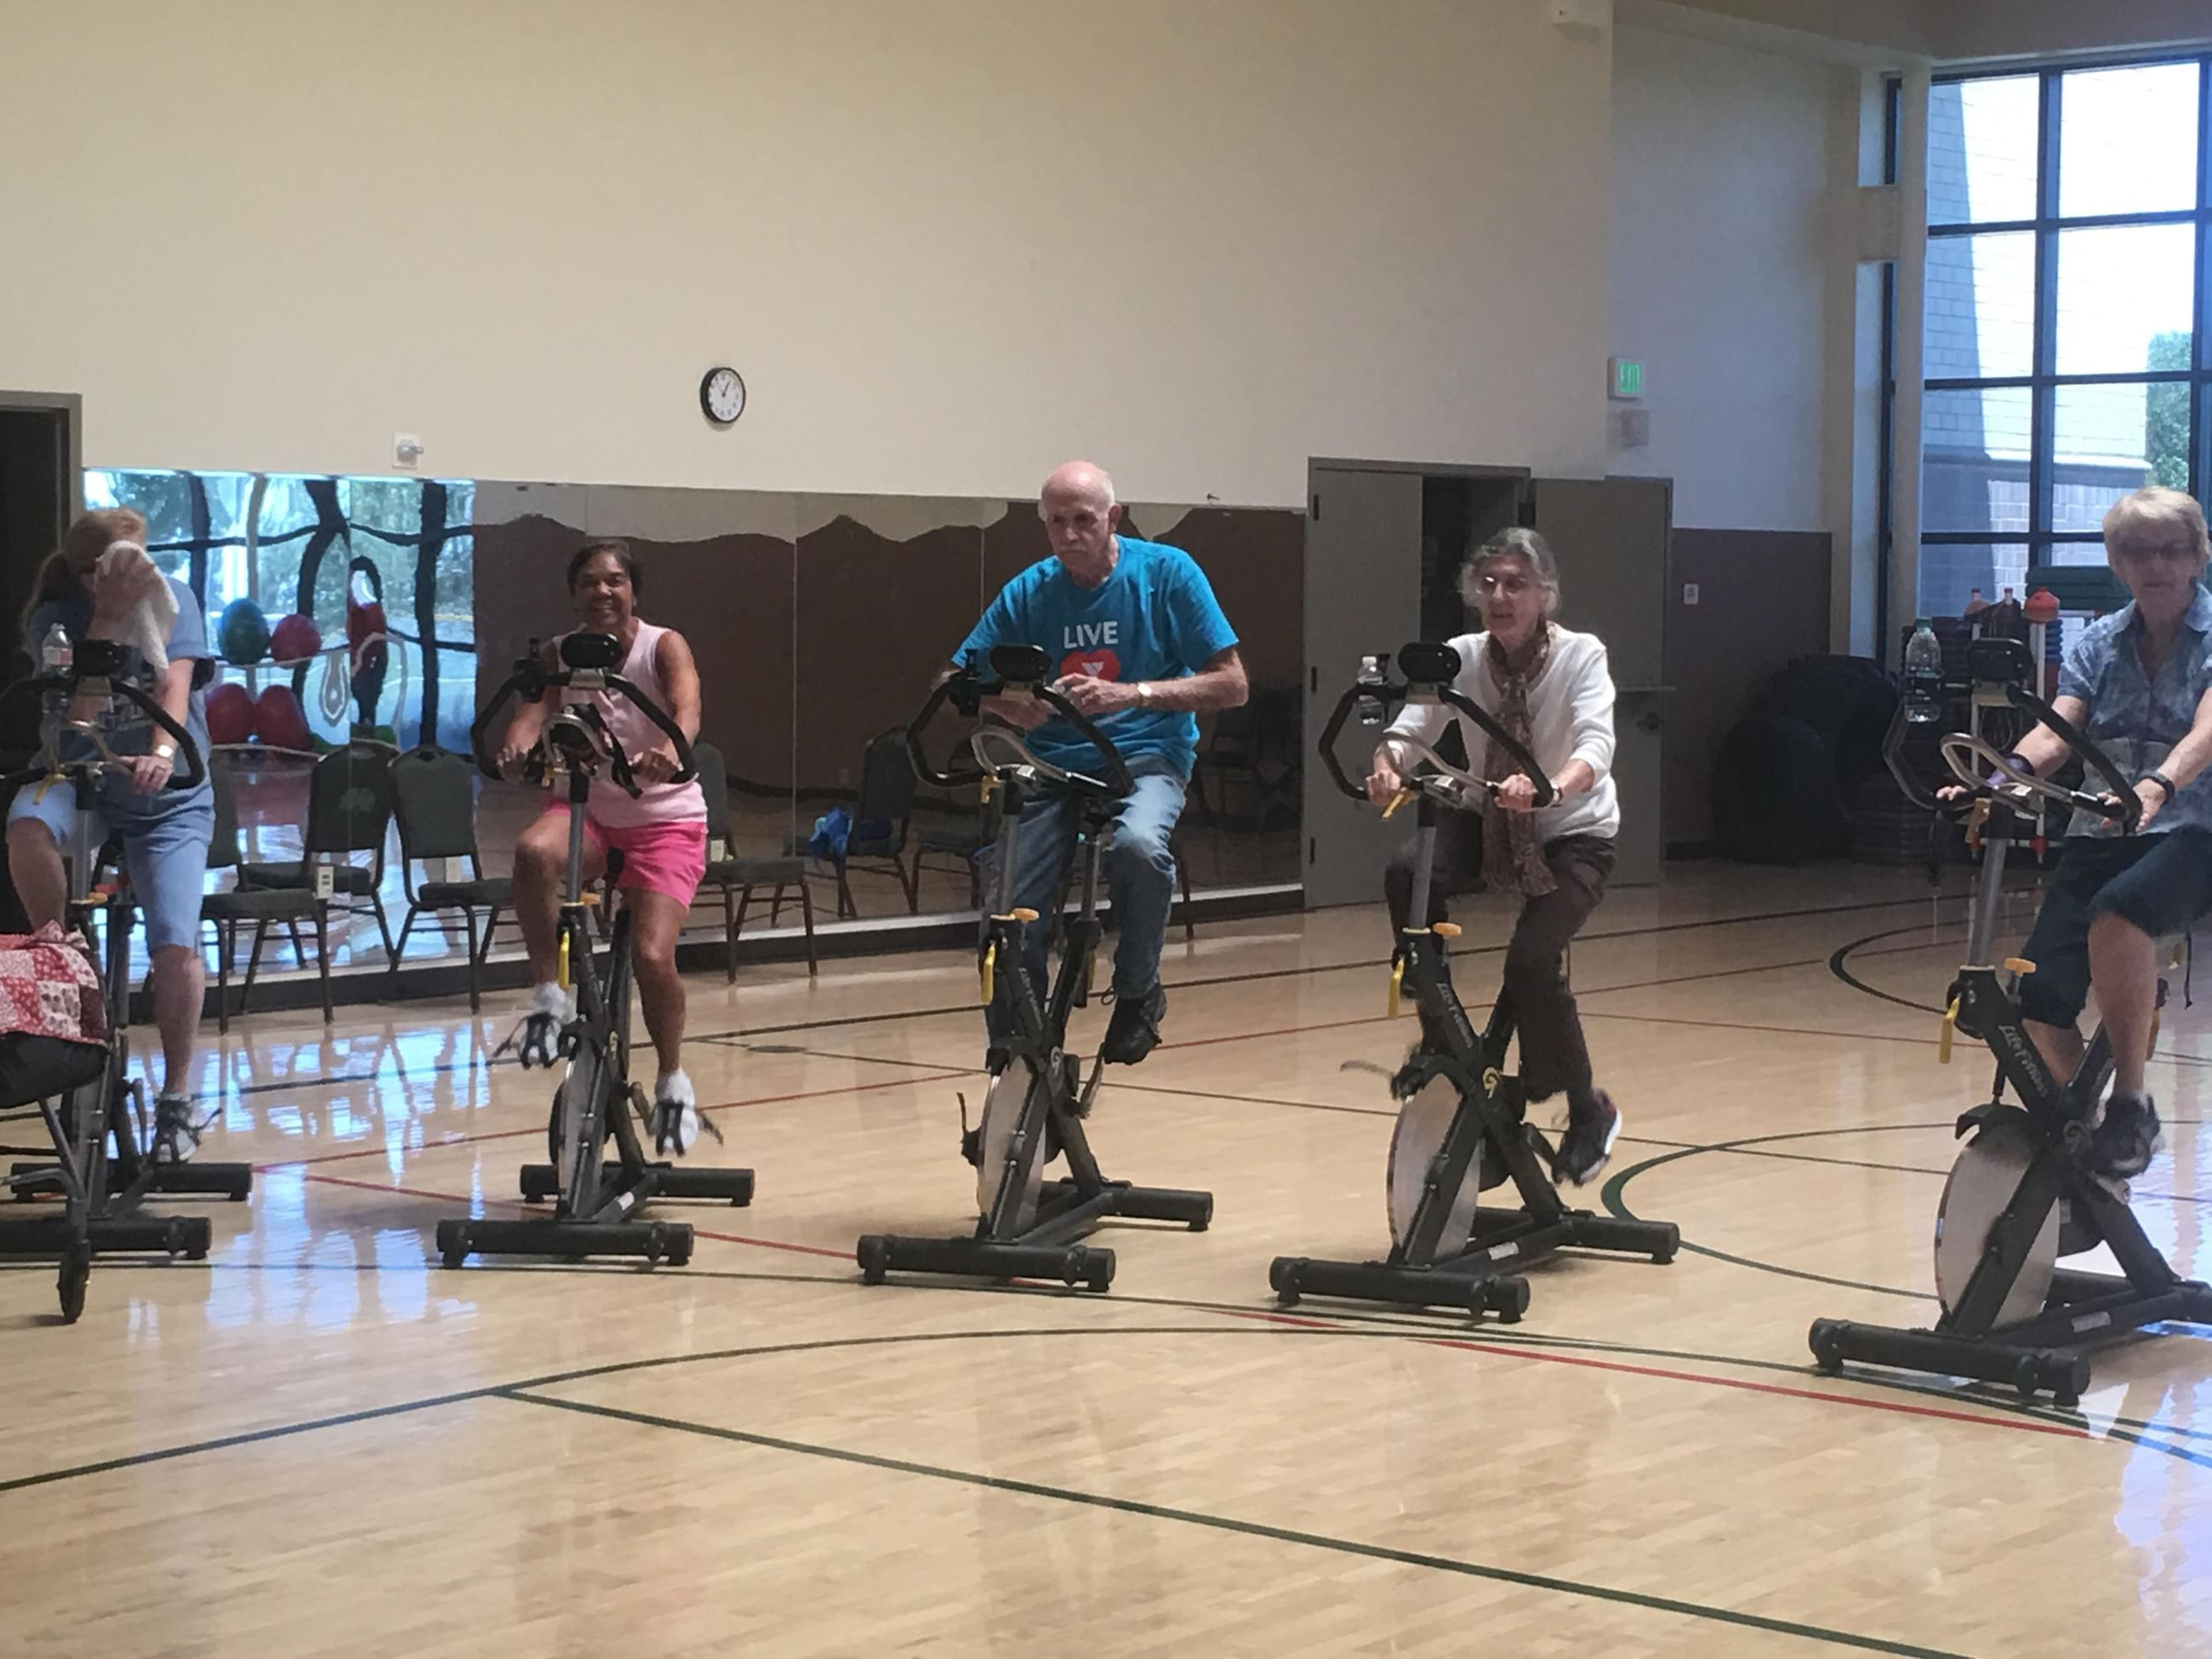 Exercise class on bikes